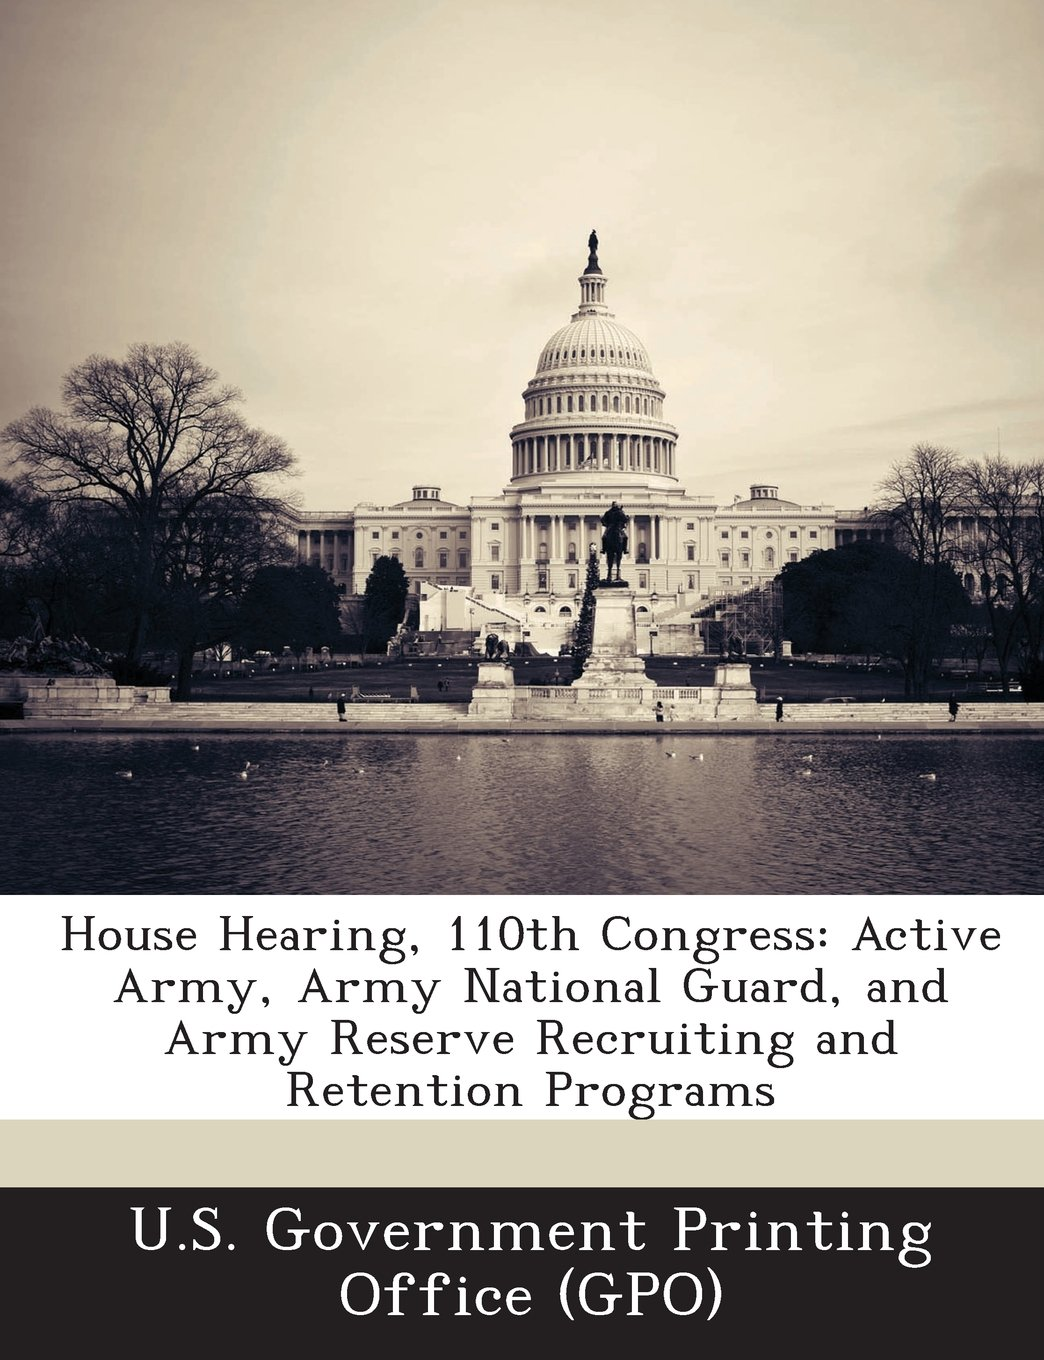 Download House Hearing, 110th Congress: Active Army, Army National Guard, and Army Reserve Recruiting and Retention Programs PDF Text fb2 ebook